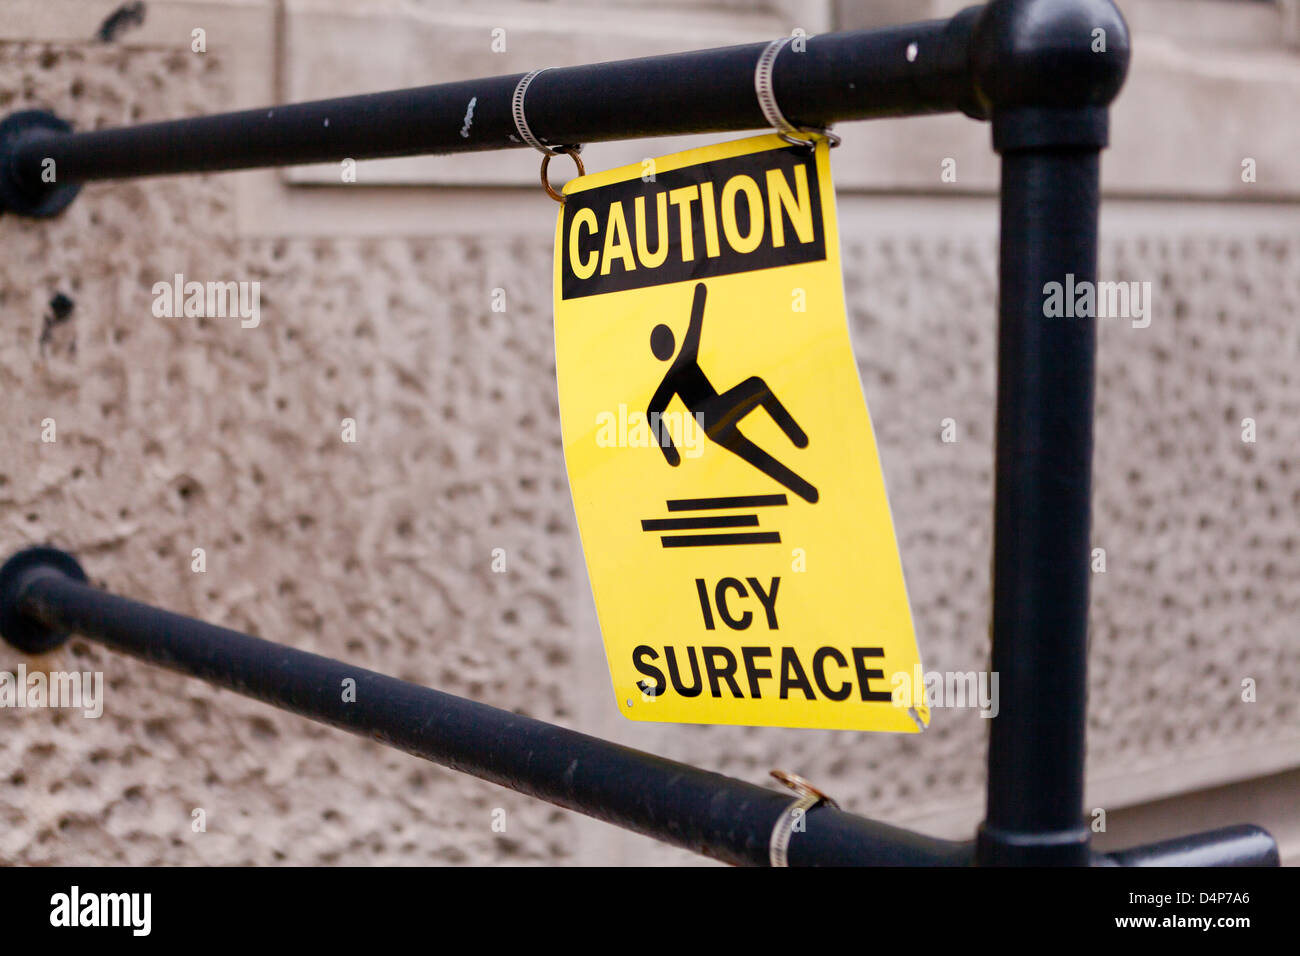 Icy surface caution sign - Stock Image